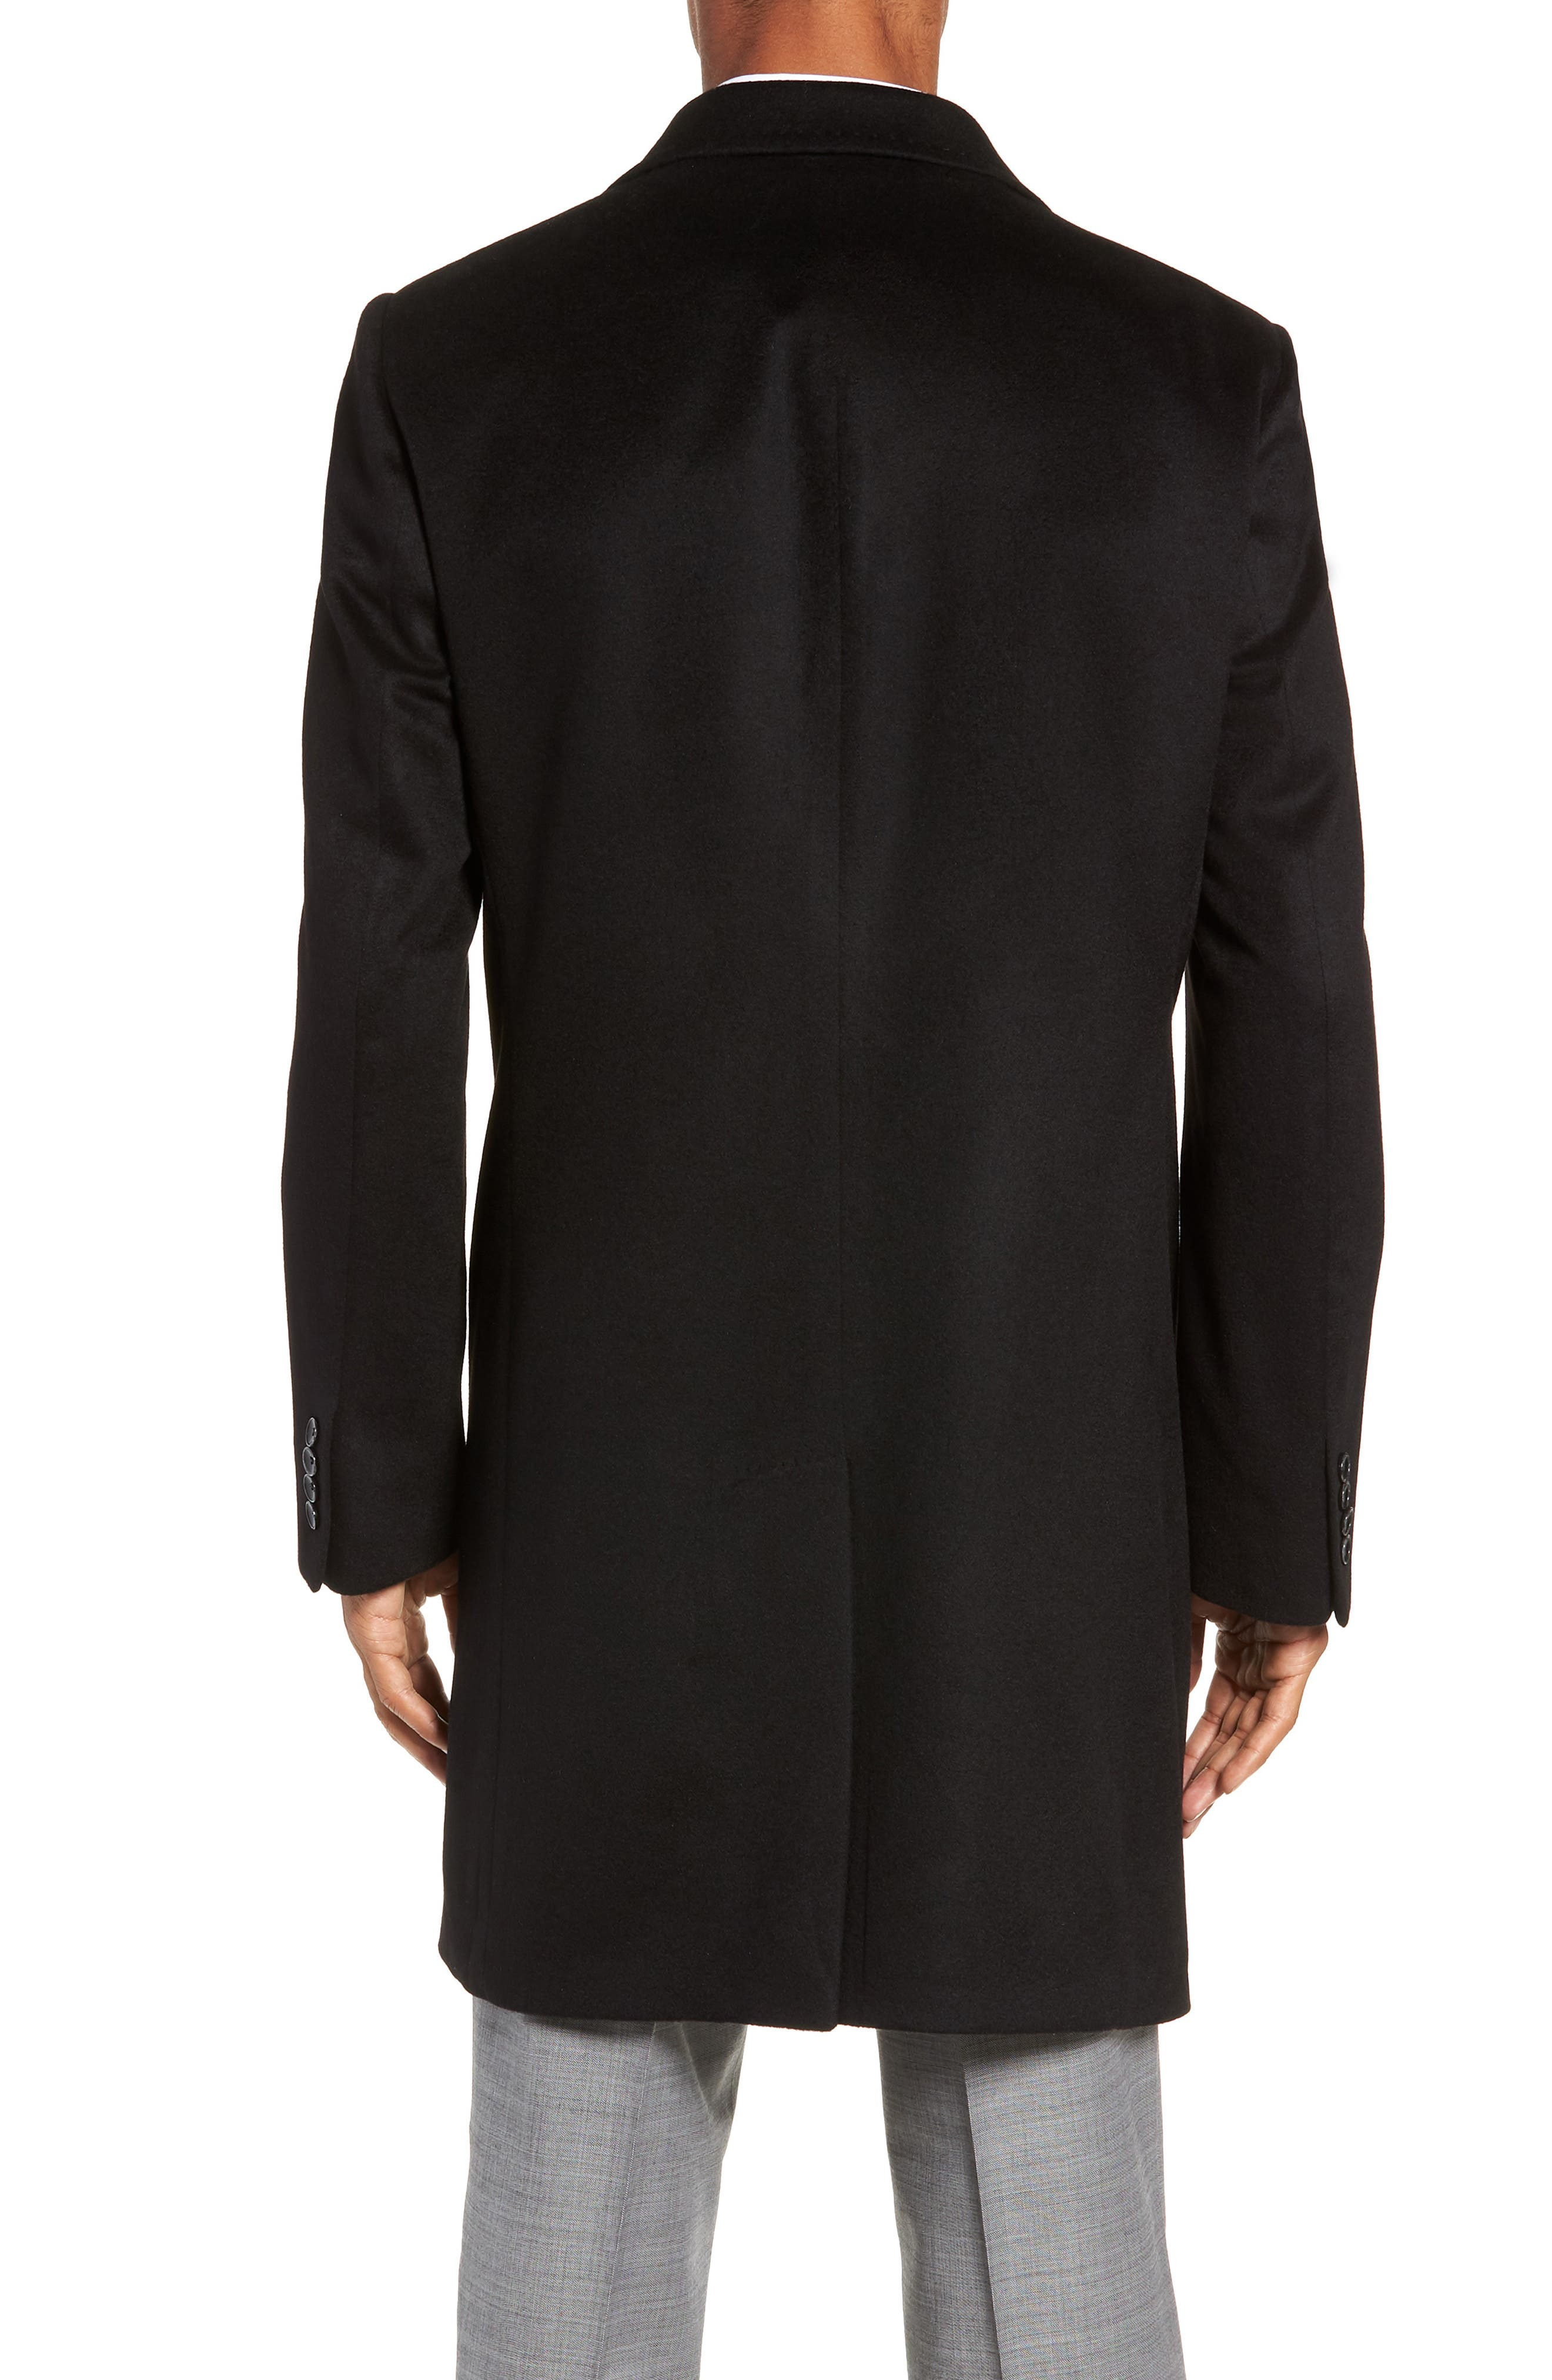 Darien Solid Cashmere Overcoat,                             Alternate thumbnail 2, color,                             BLACK